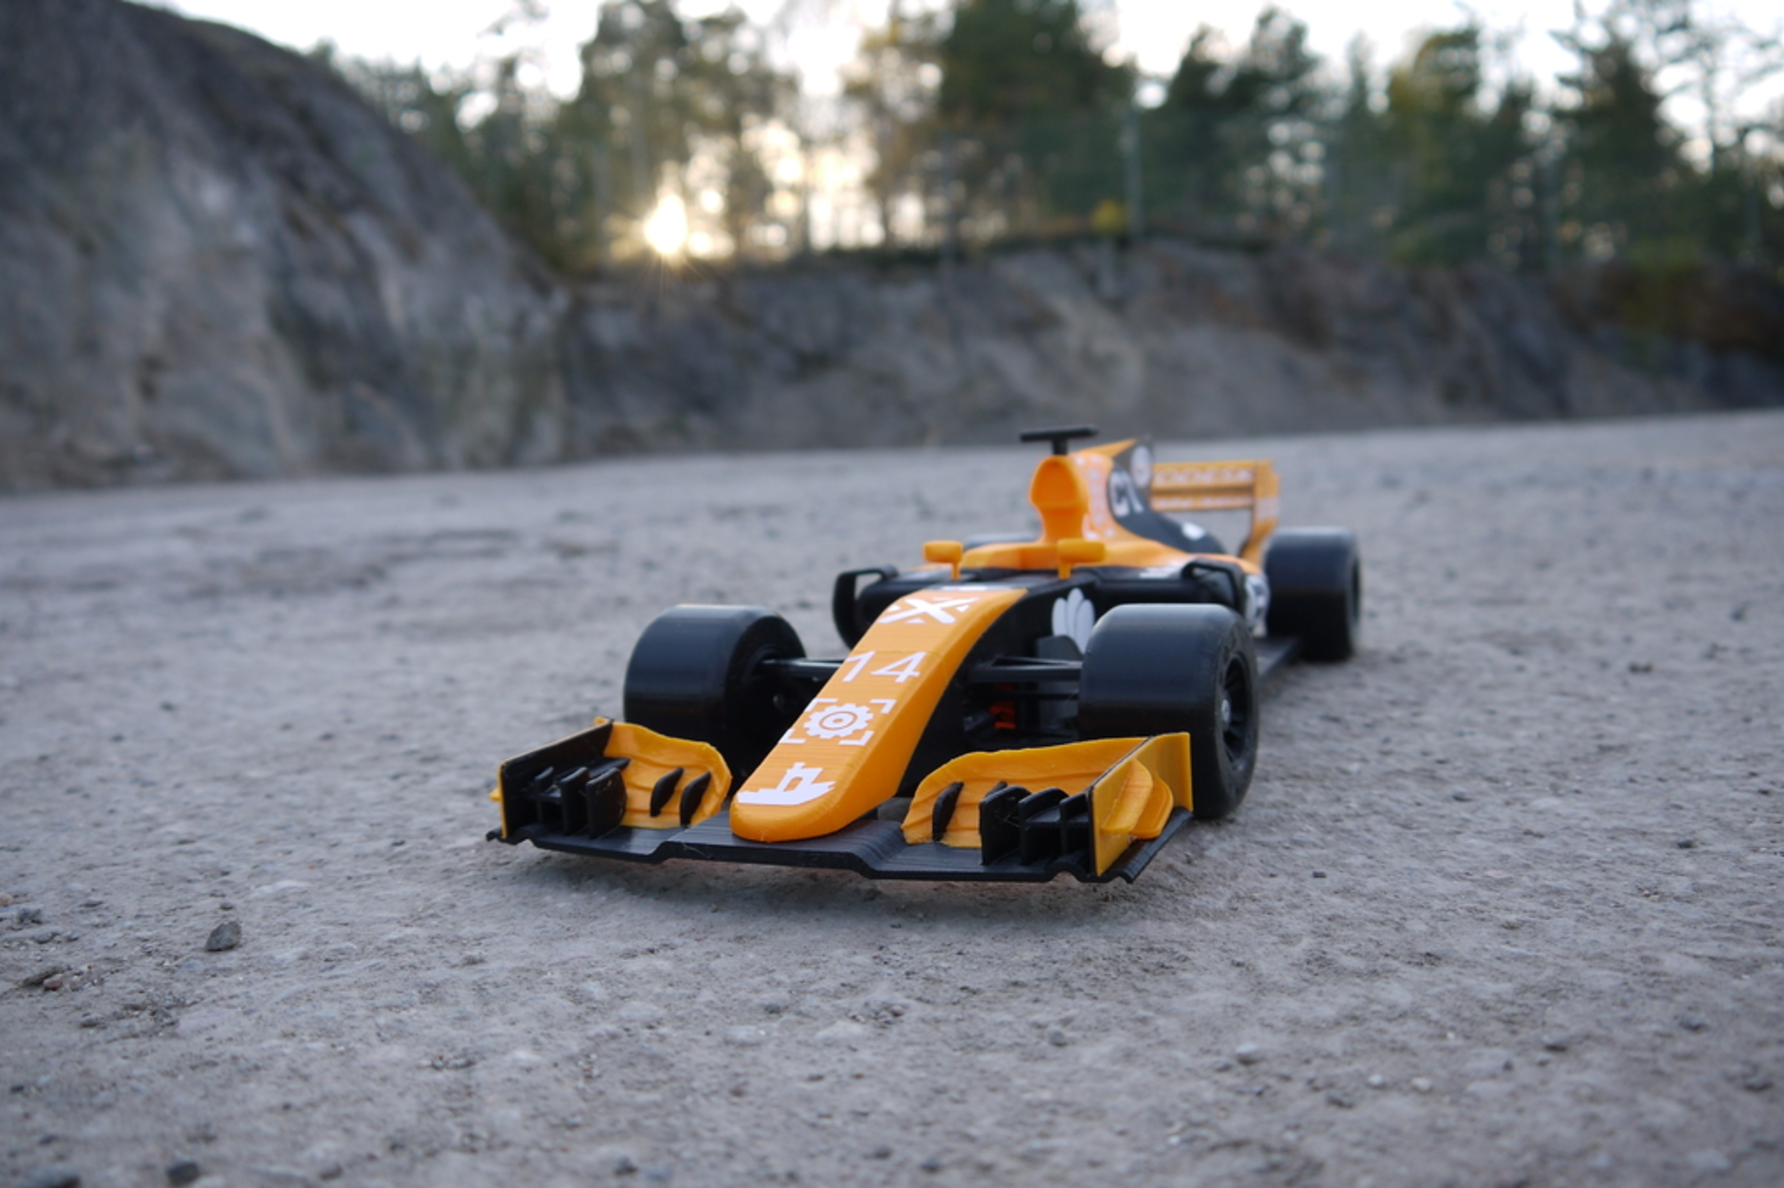 OpenRC F1 Dual Color McLaren Edition 3D Printing Free STL file Cults2.png Download free STL file OpenRC F1 Dual Color McLaren Edition • 3D printer model, DanielNoree